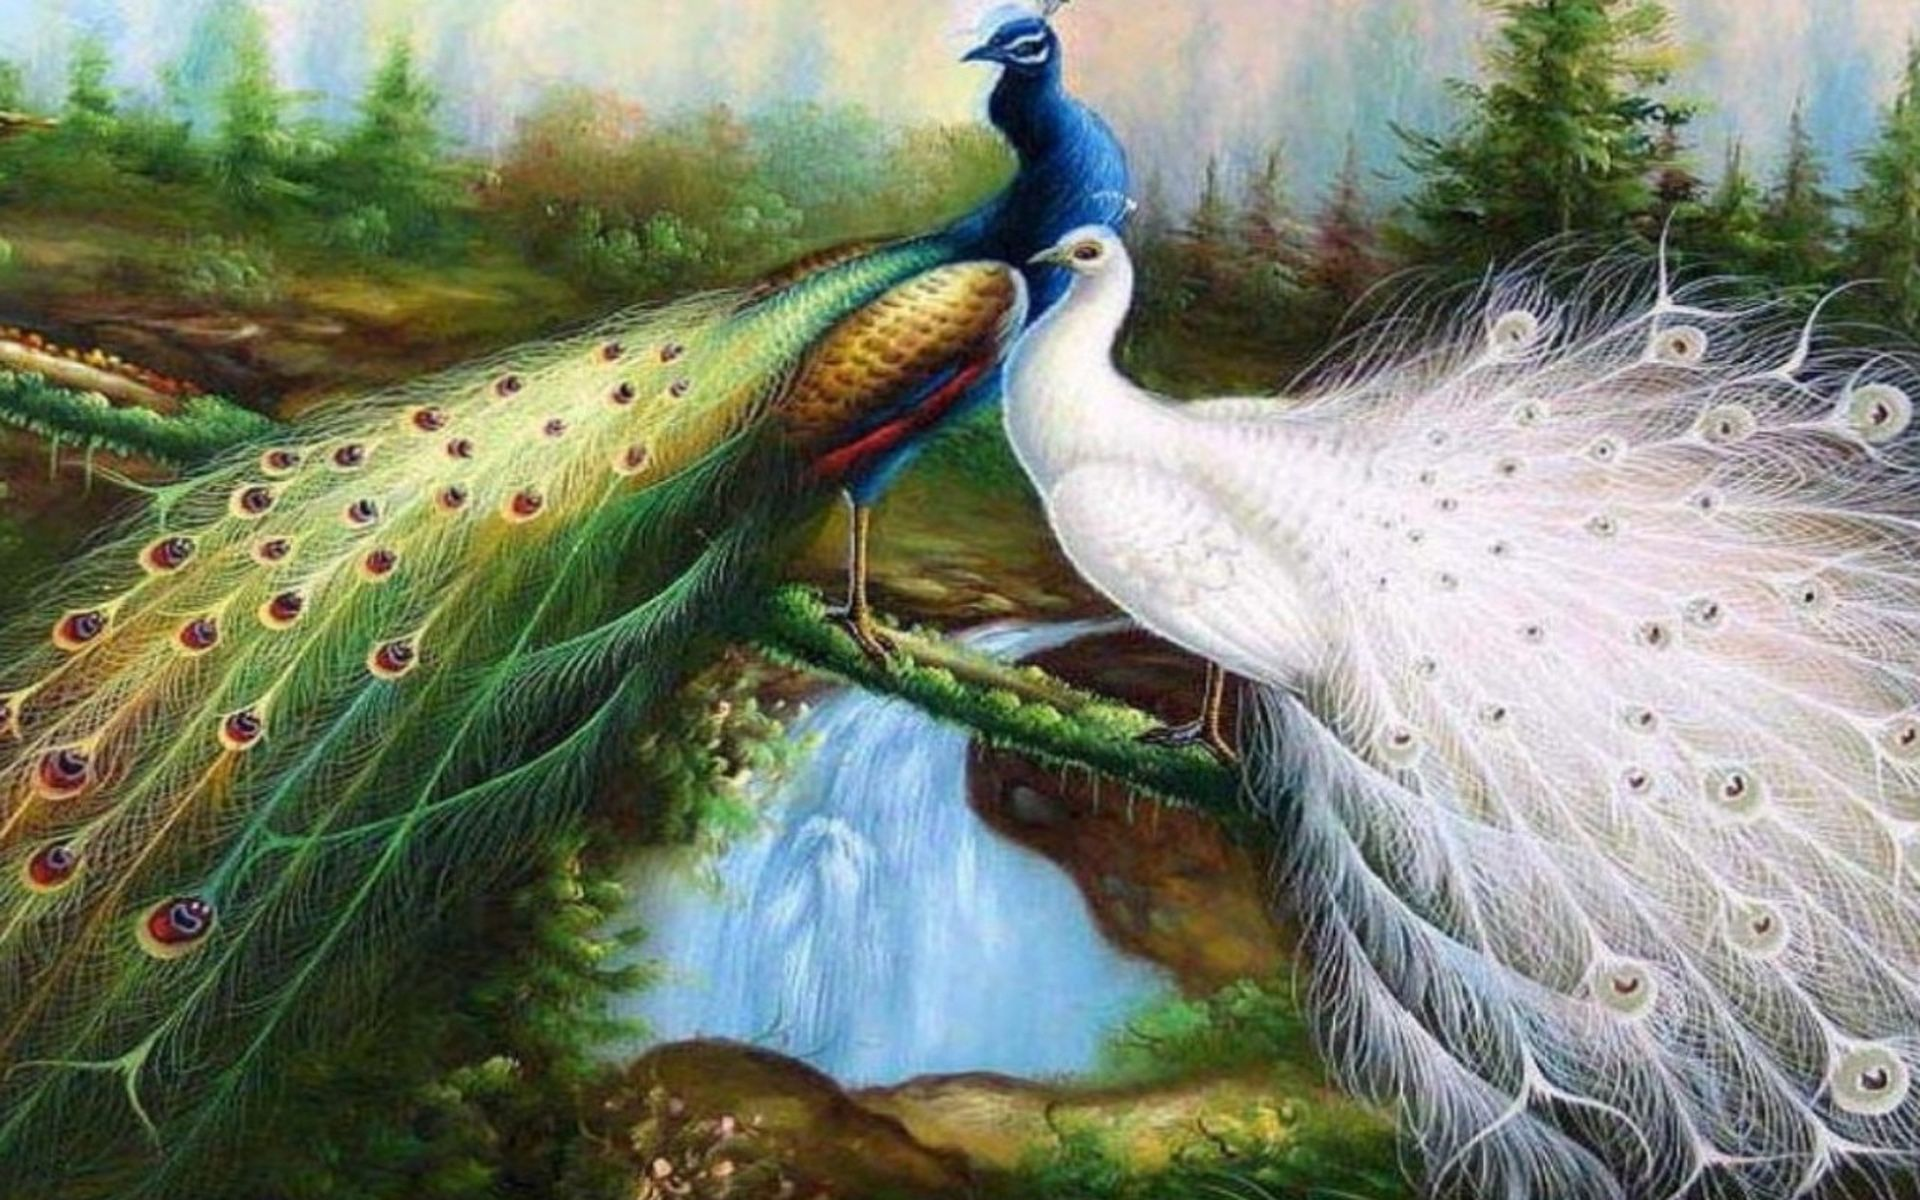 Peacock Wallpaper Roaming In Garden Download 3d Hd Colour Design Peacock Pictures Peacock Wallpaper Cross Paintings